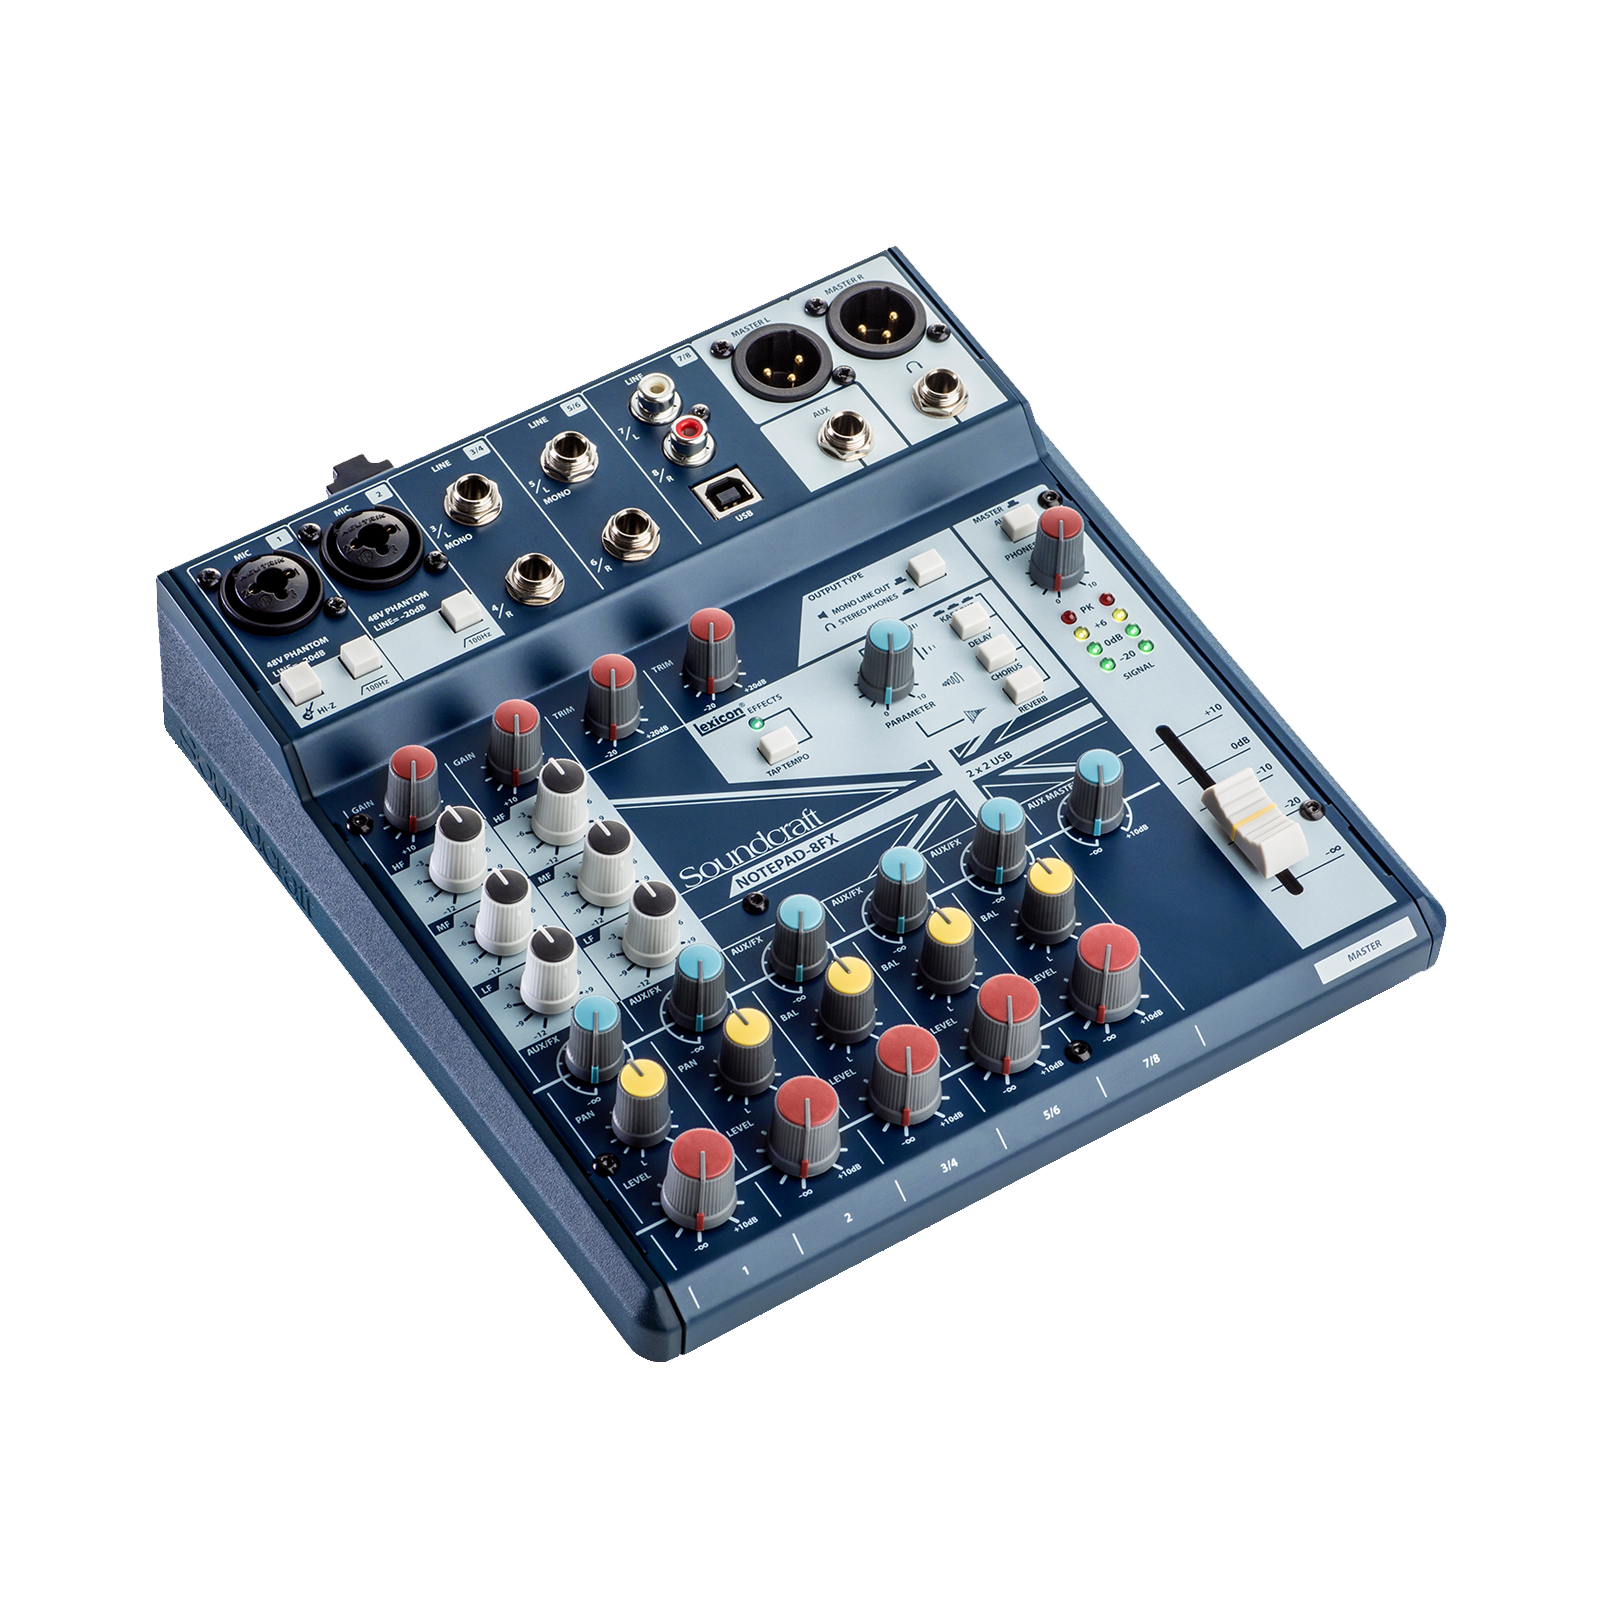 Notepad-8FX (B-Stock) - Dark Blue - Small-format analog mixing console with USB I/O and Lexicon effects - Hero